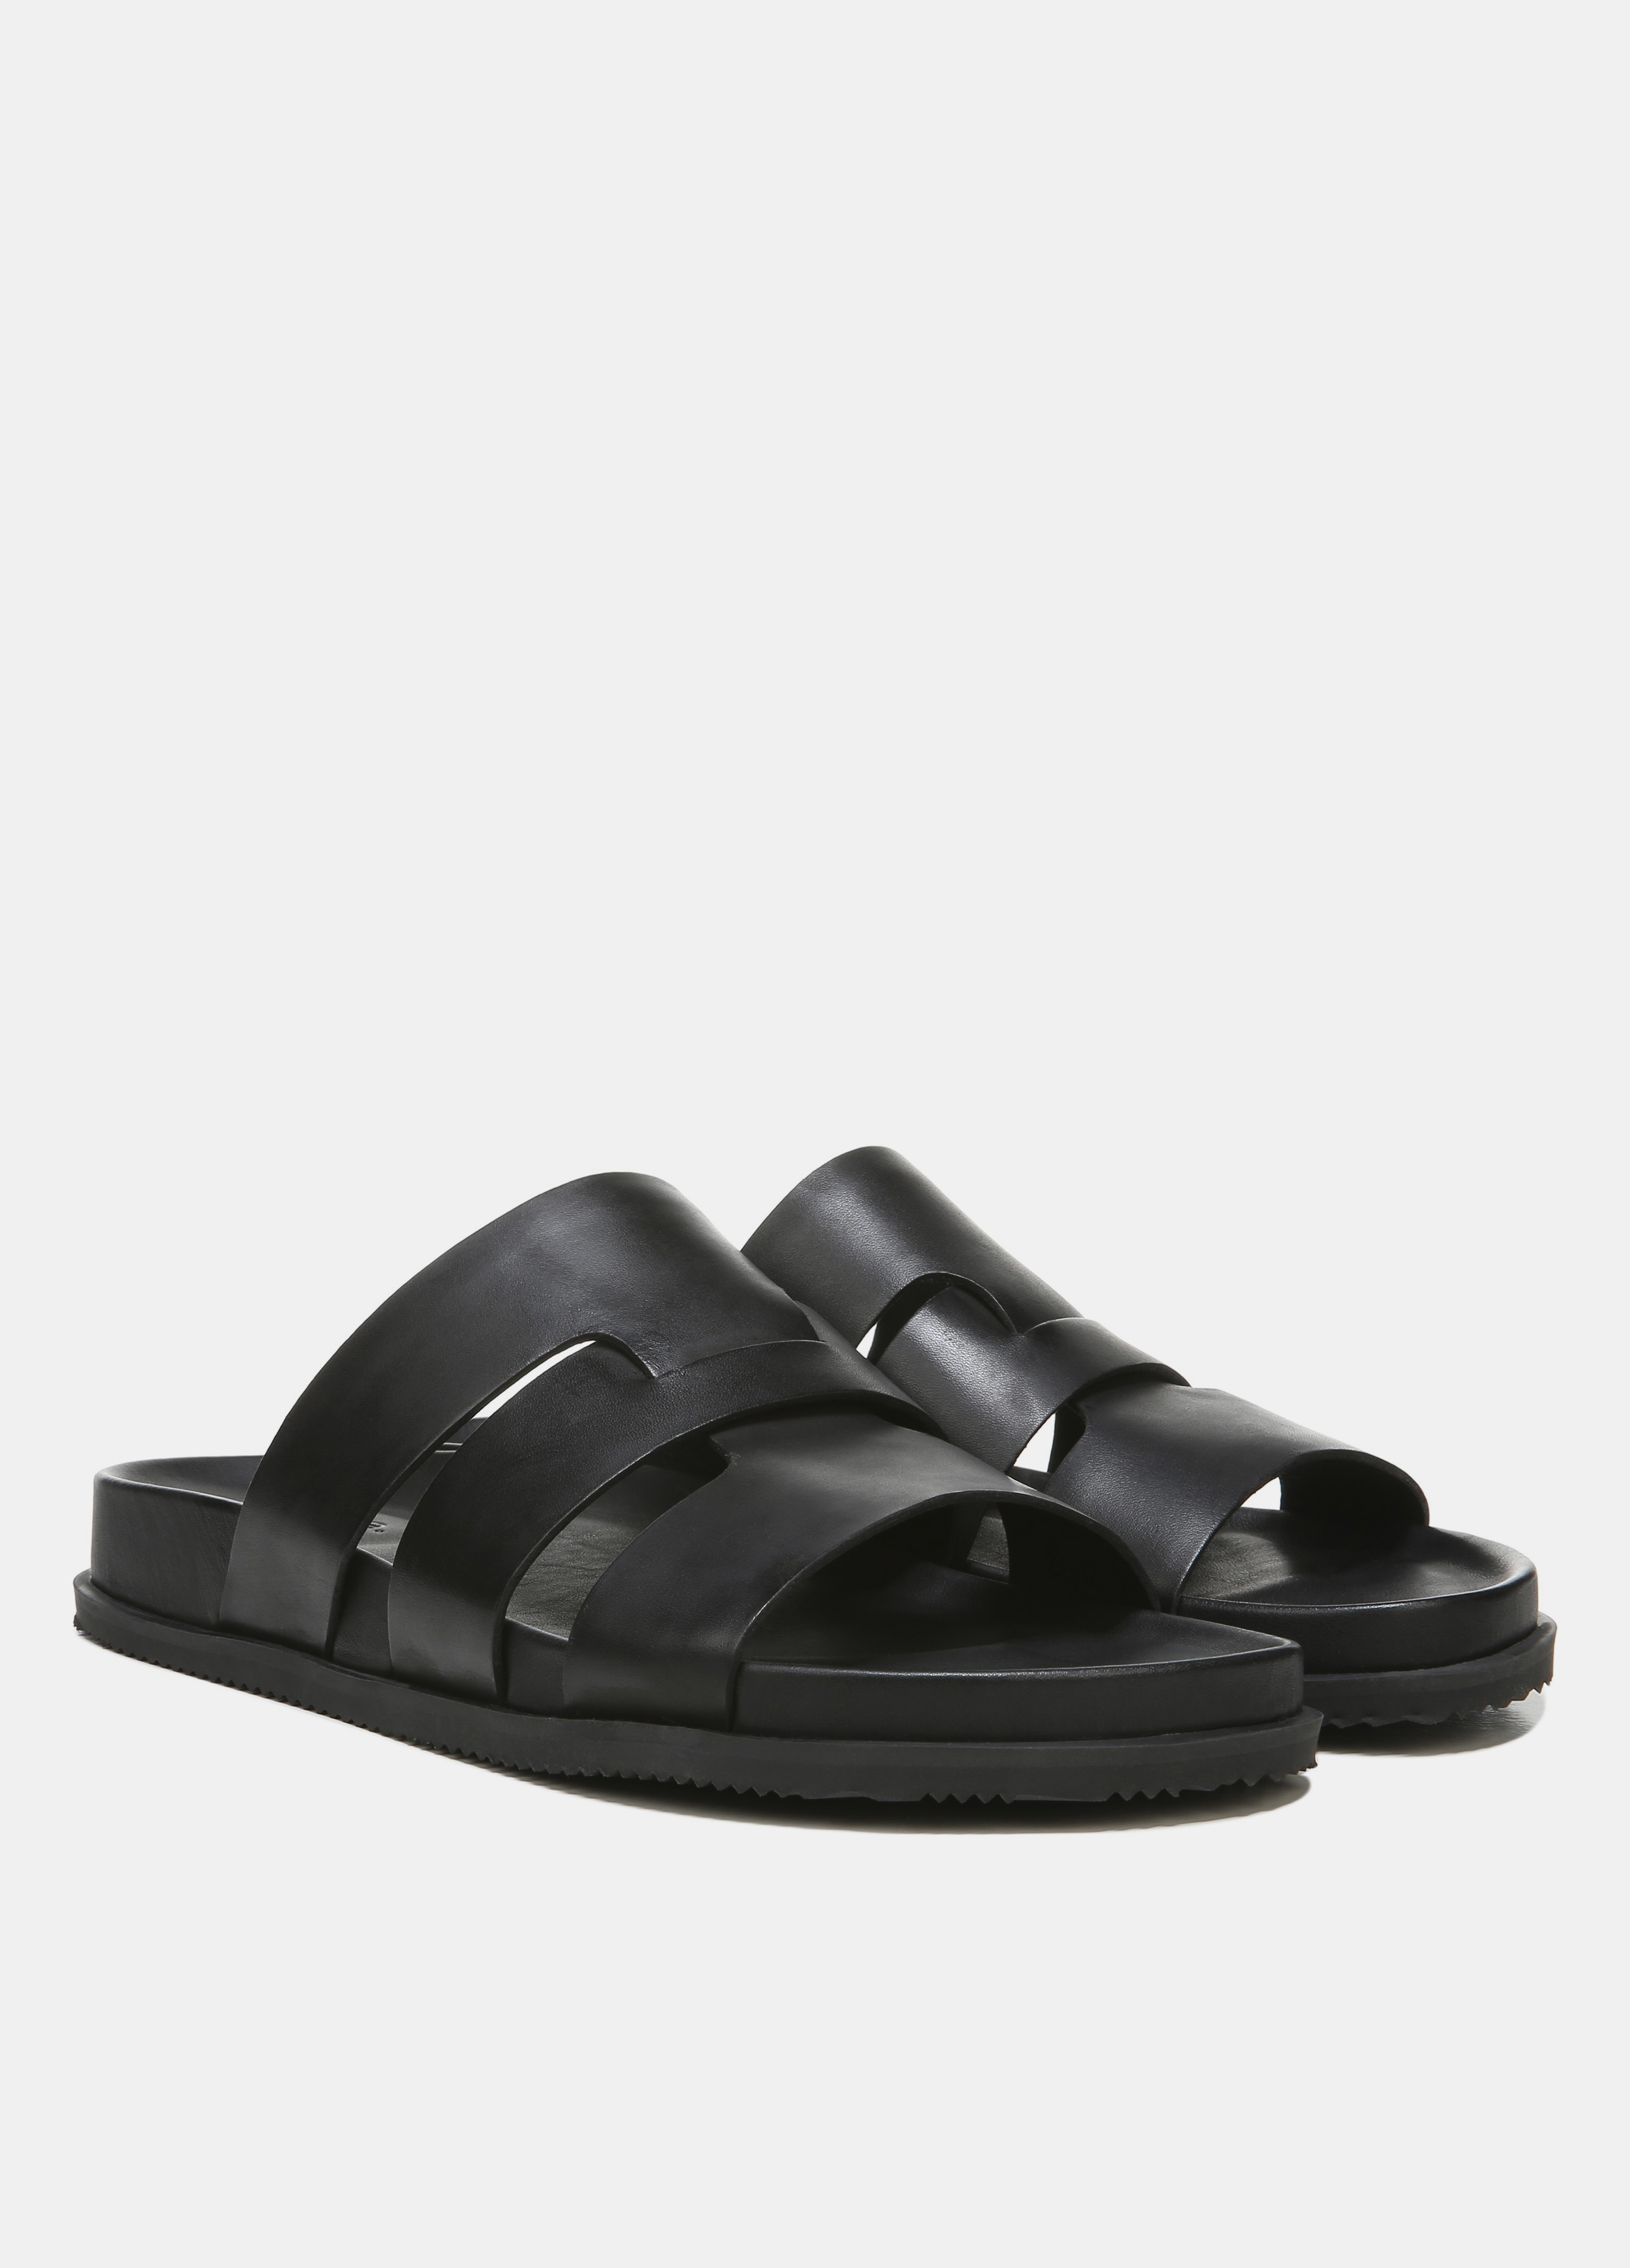 Dorsey Leather Sandal